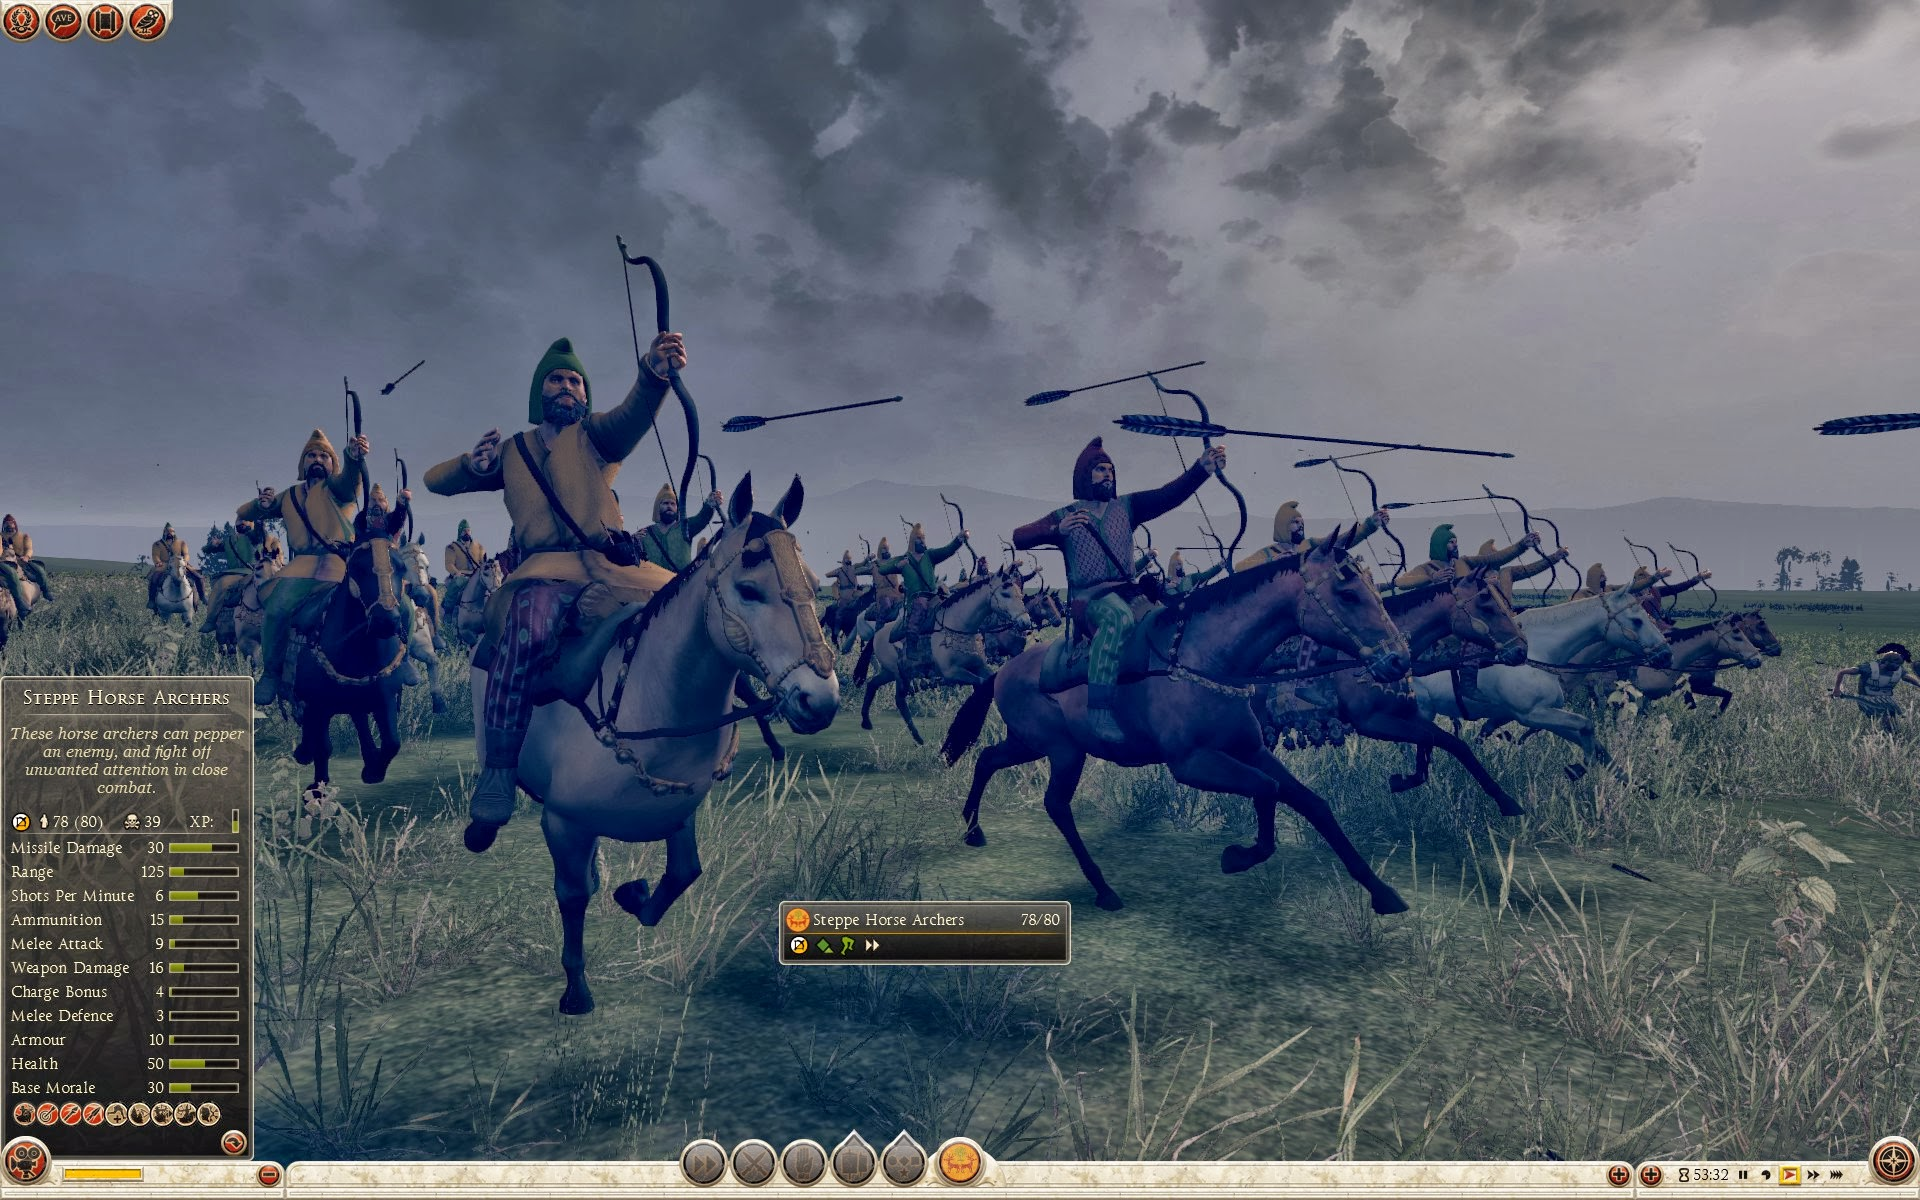 Steppe Horse Archers